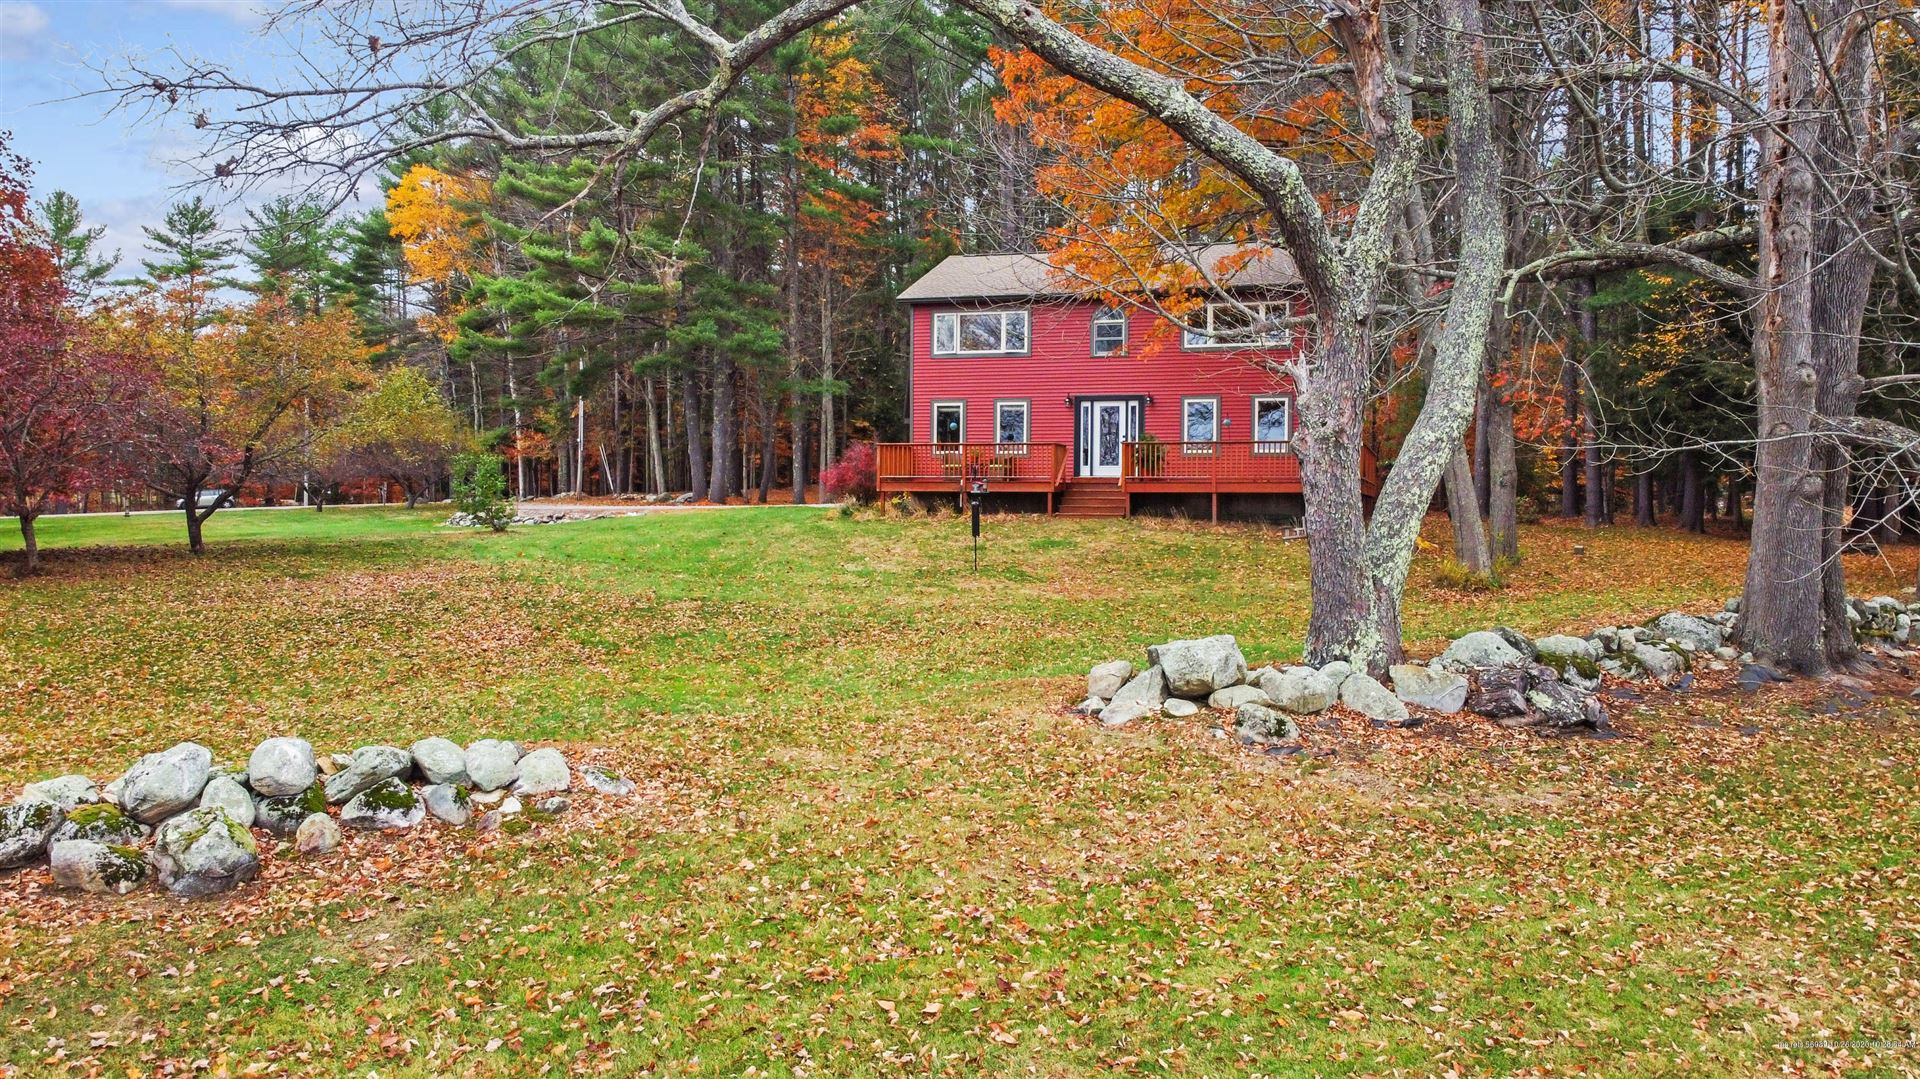 Photo of 69 Old Fairgrounds Road, Readfield, ME 04355 (MLS # 1473947)